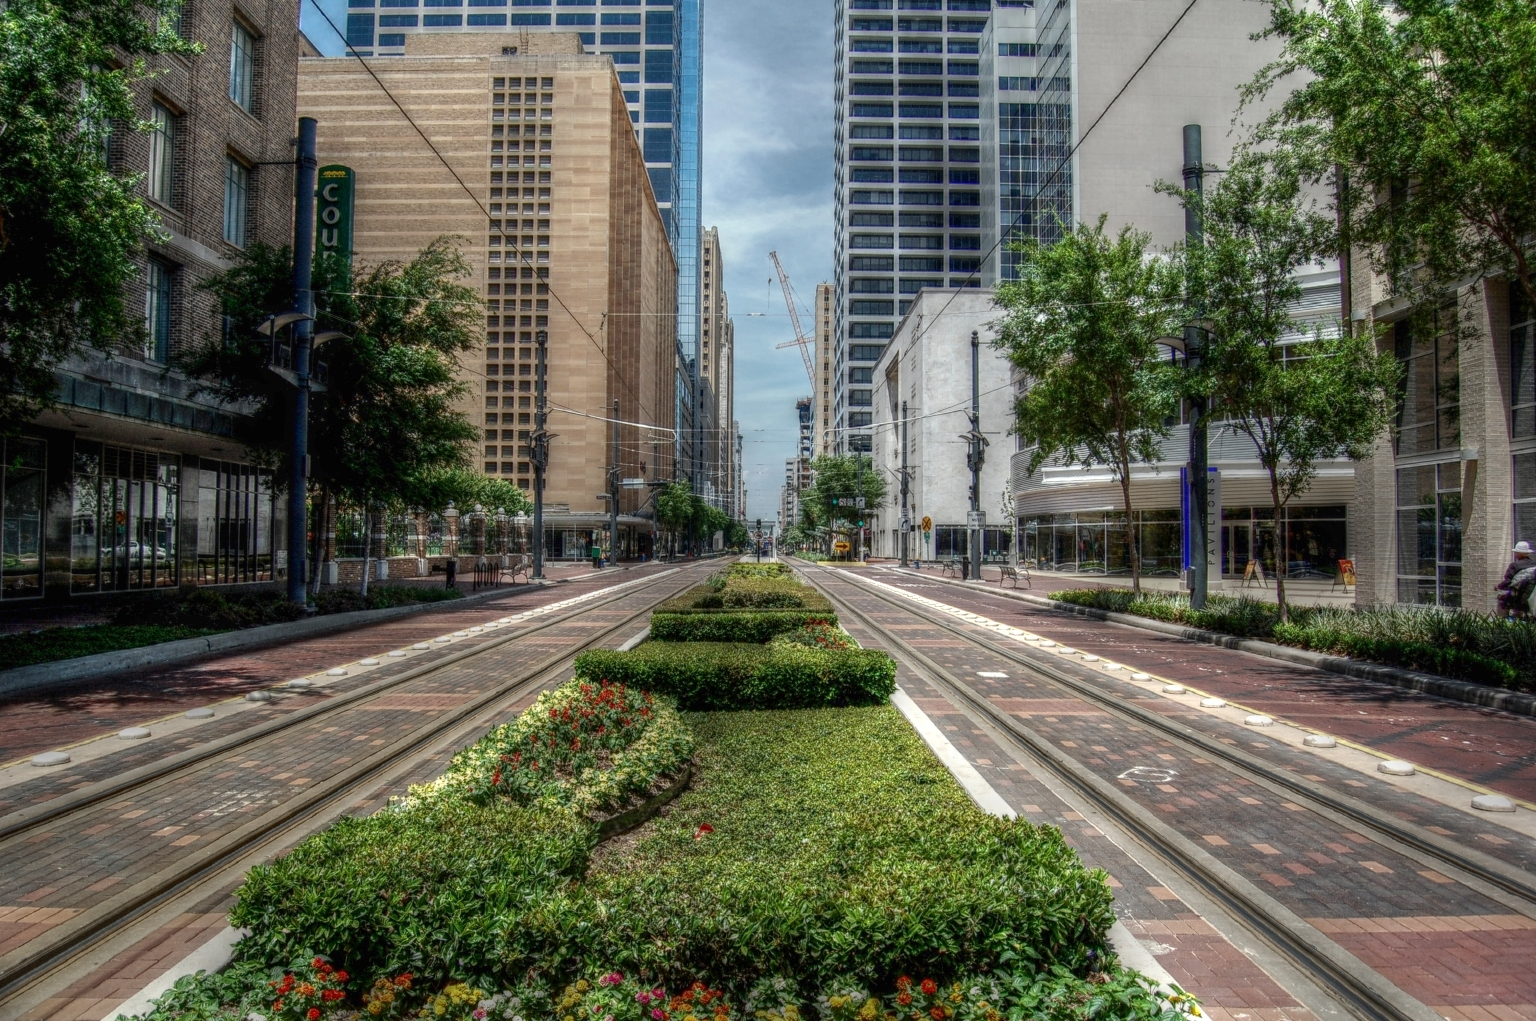 Main Street, Houston (credit: Jerald Jackson)